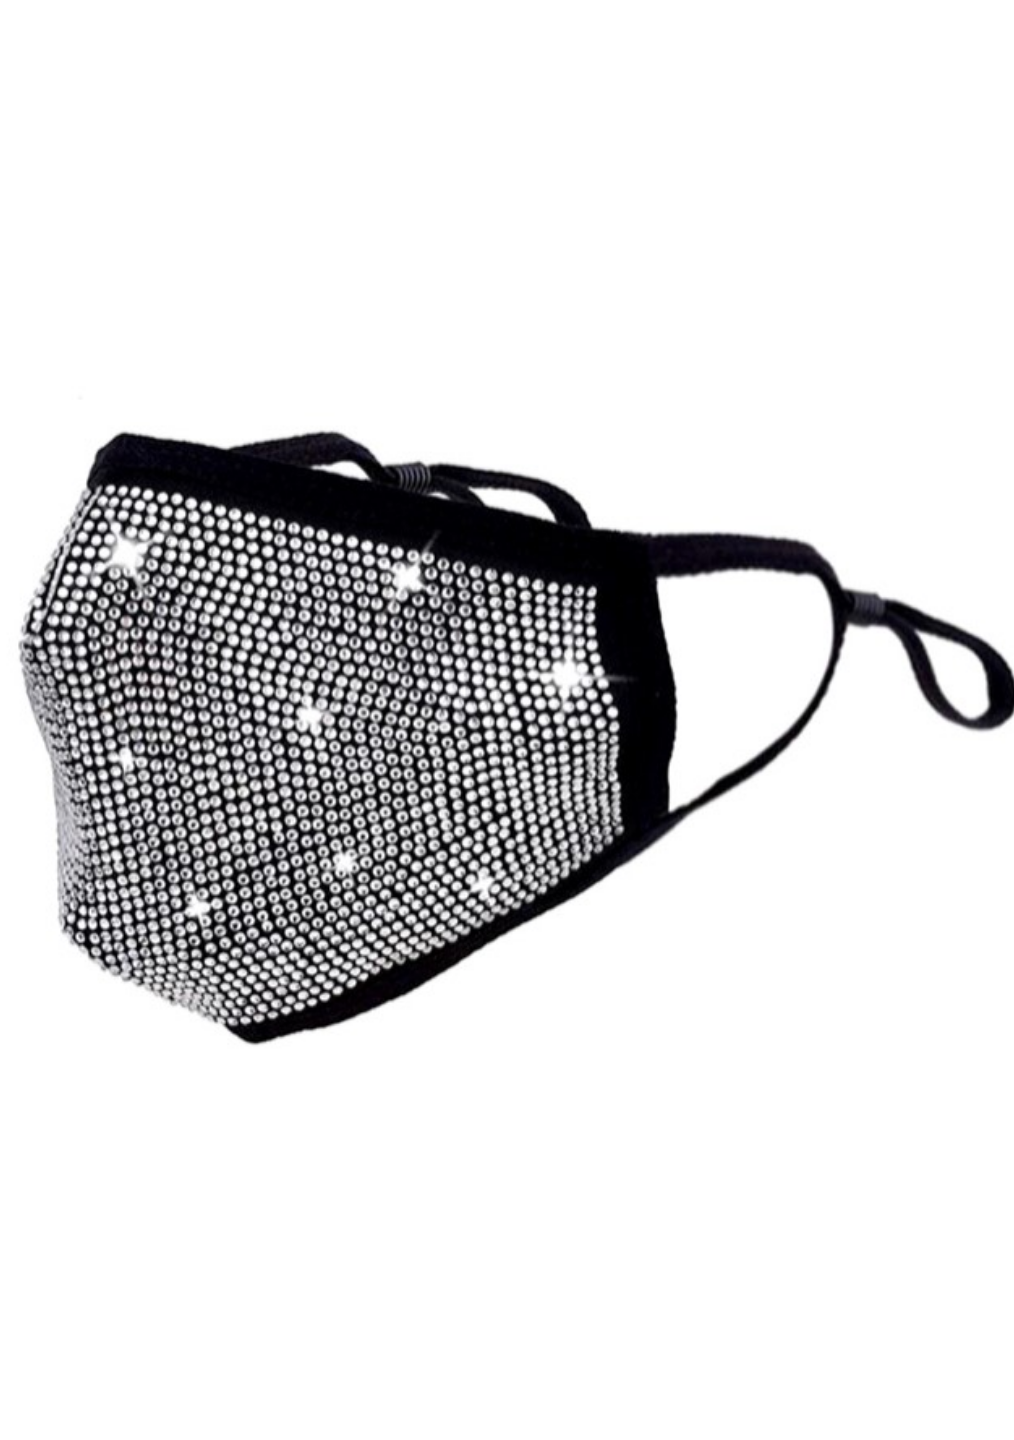 Black Rhinestone Mask